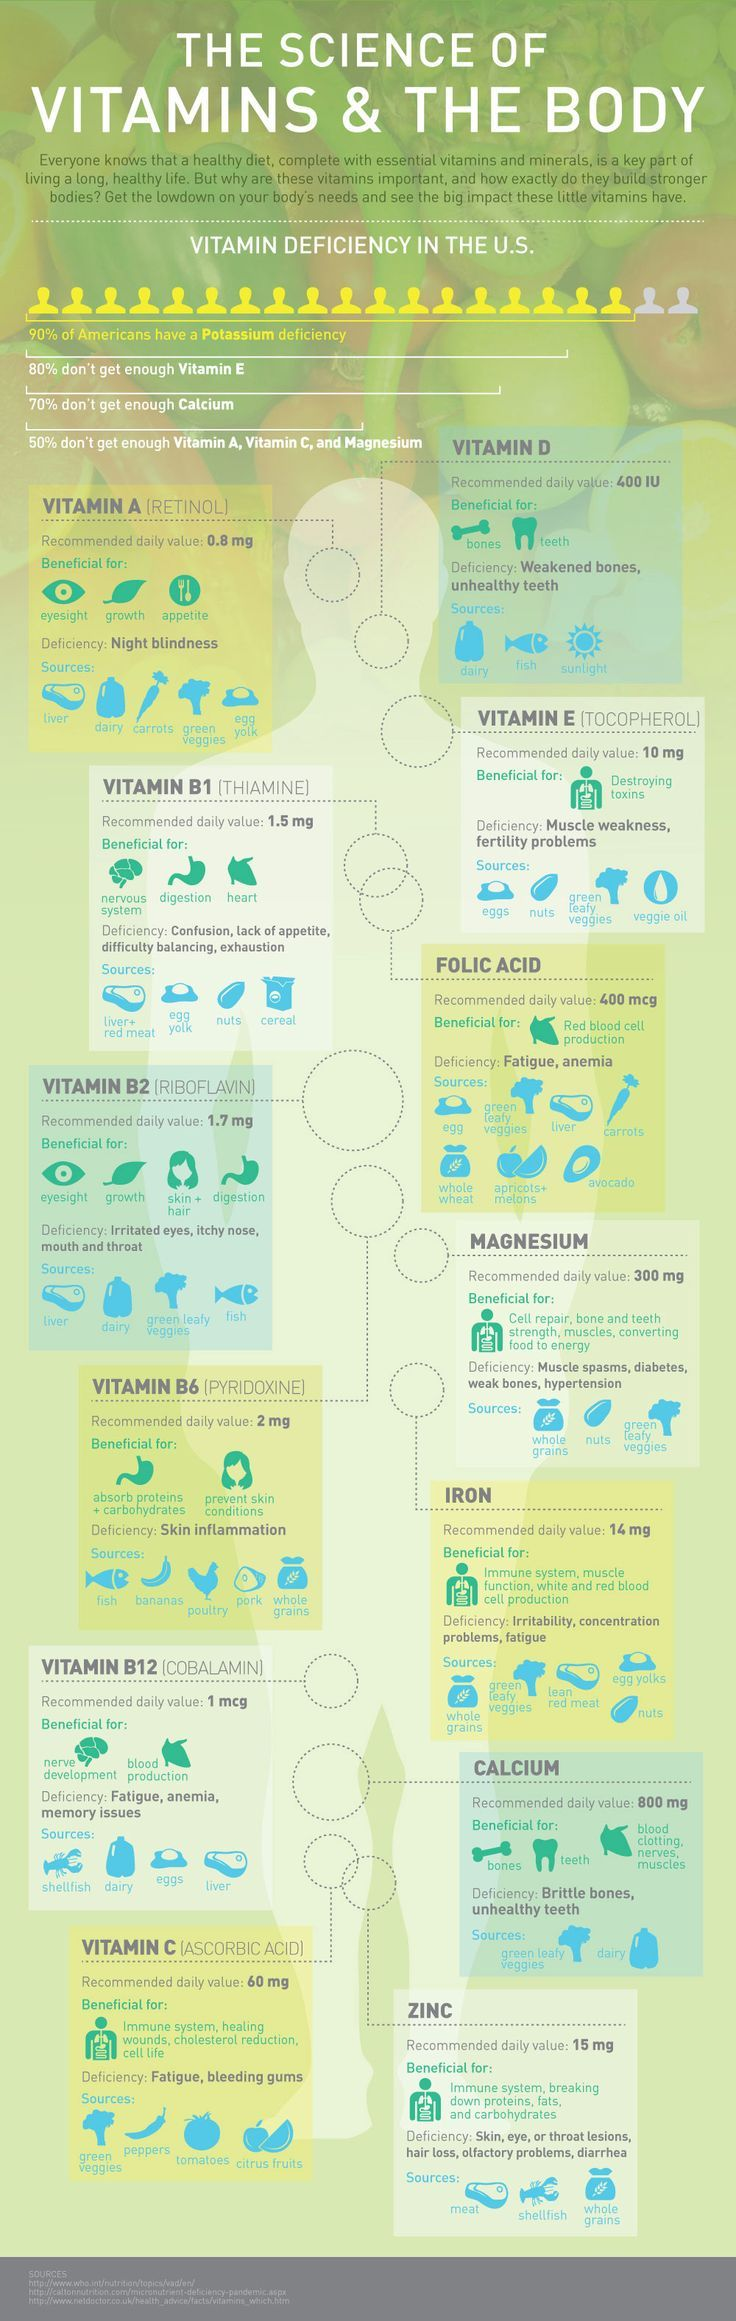 Vitamin Deficiency Infographic - short on Potassium, Vitamins E, A, C, Calcium & Magnesium? This lists benefits, deficiency and healing food sources